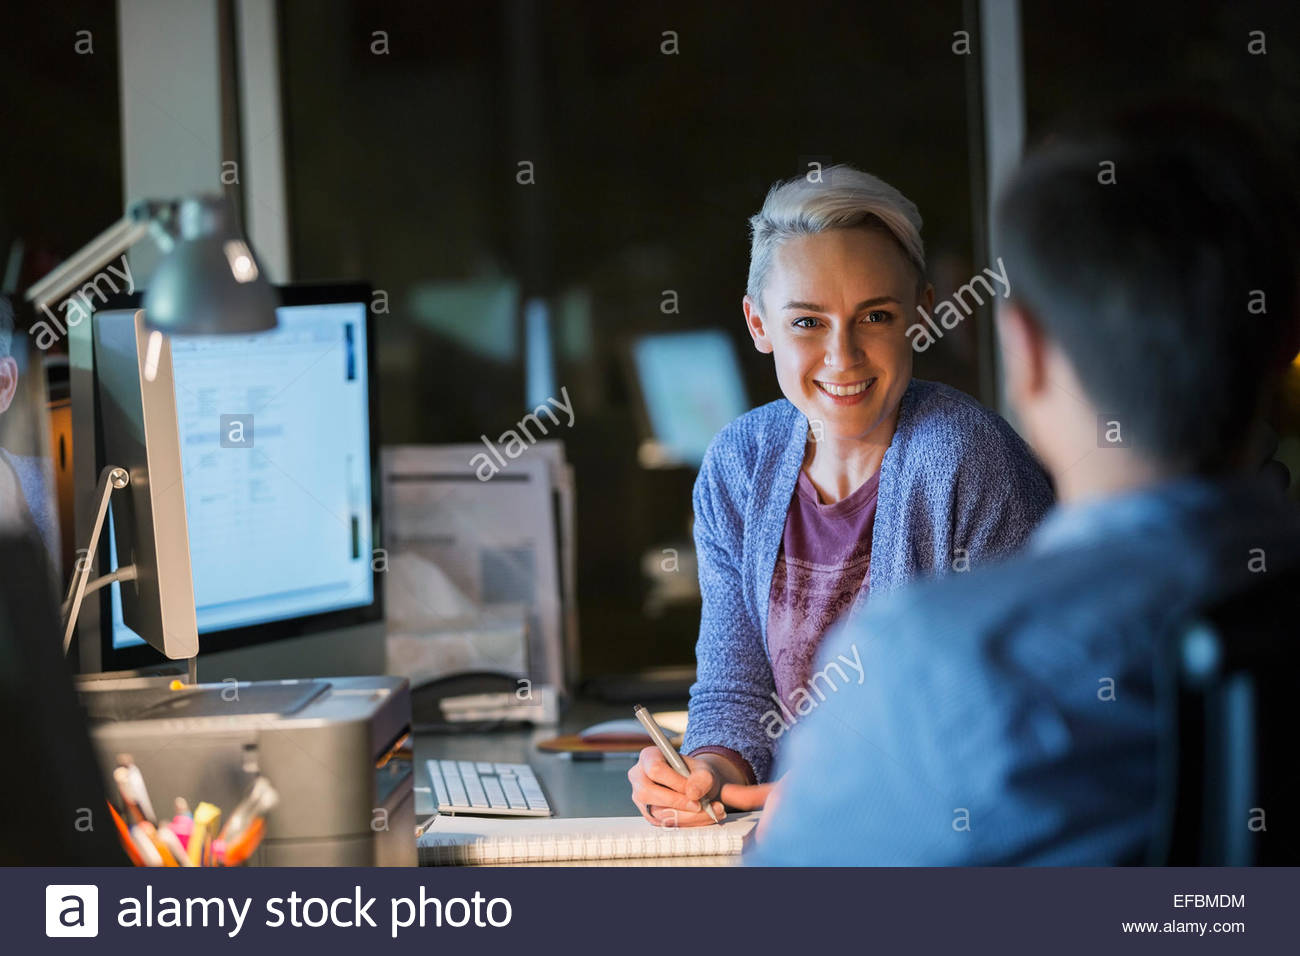 Business people working late in office - Stock Image